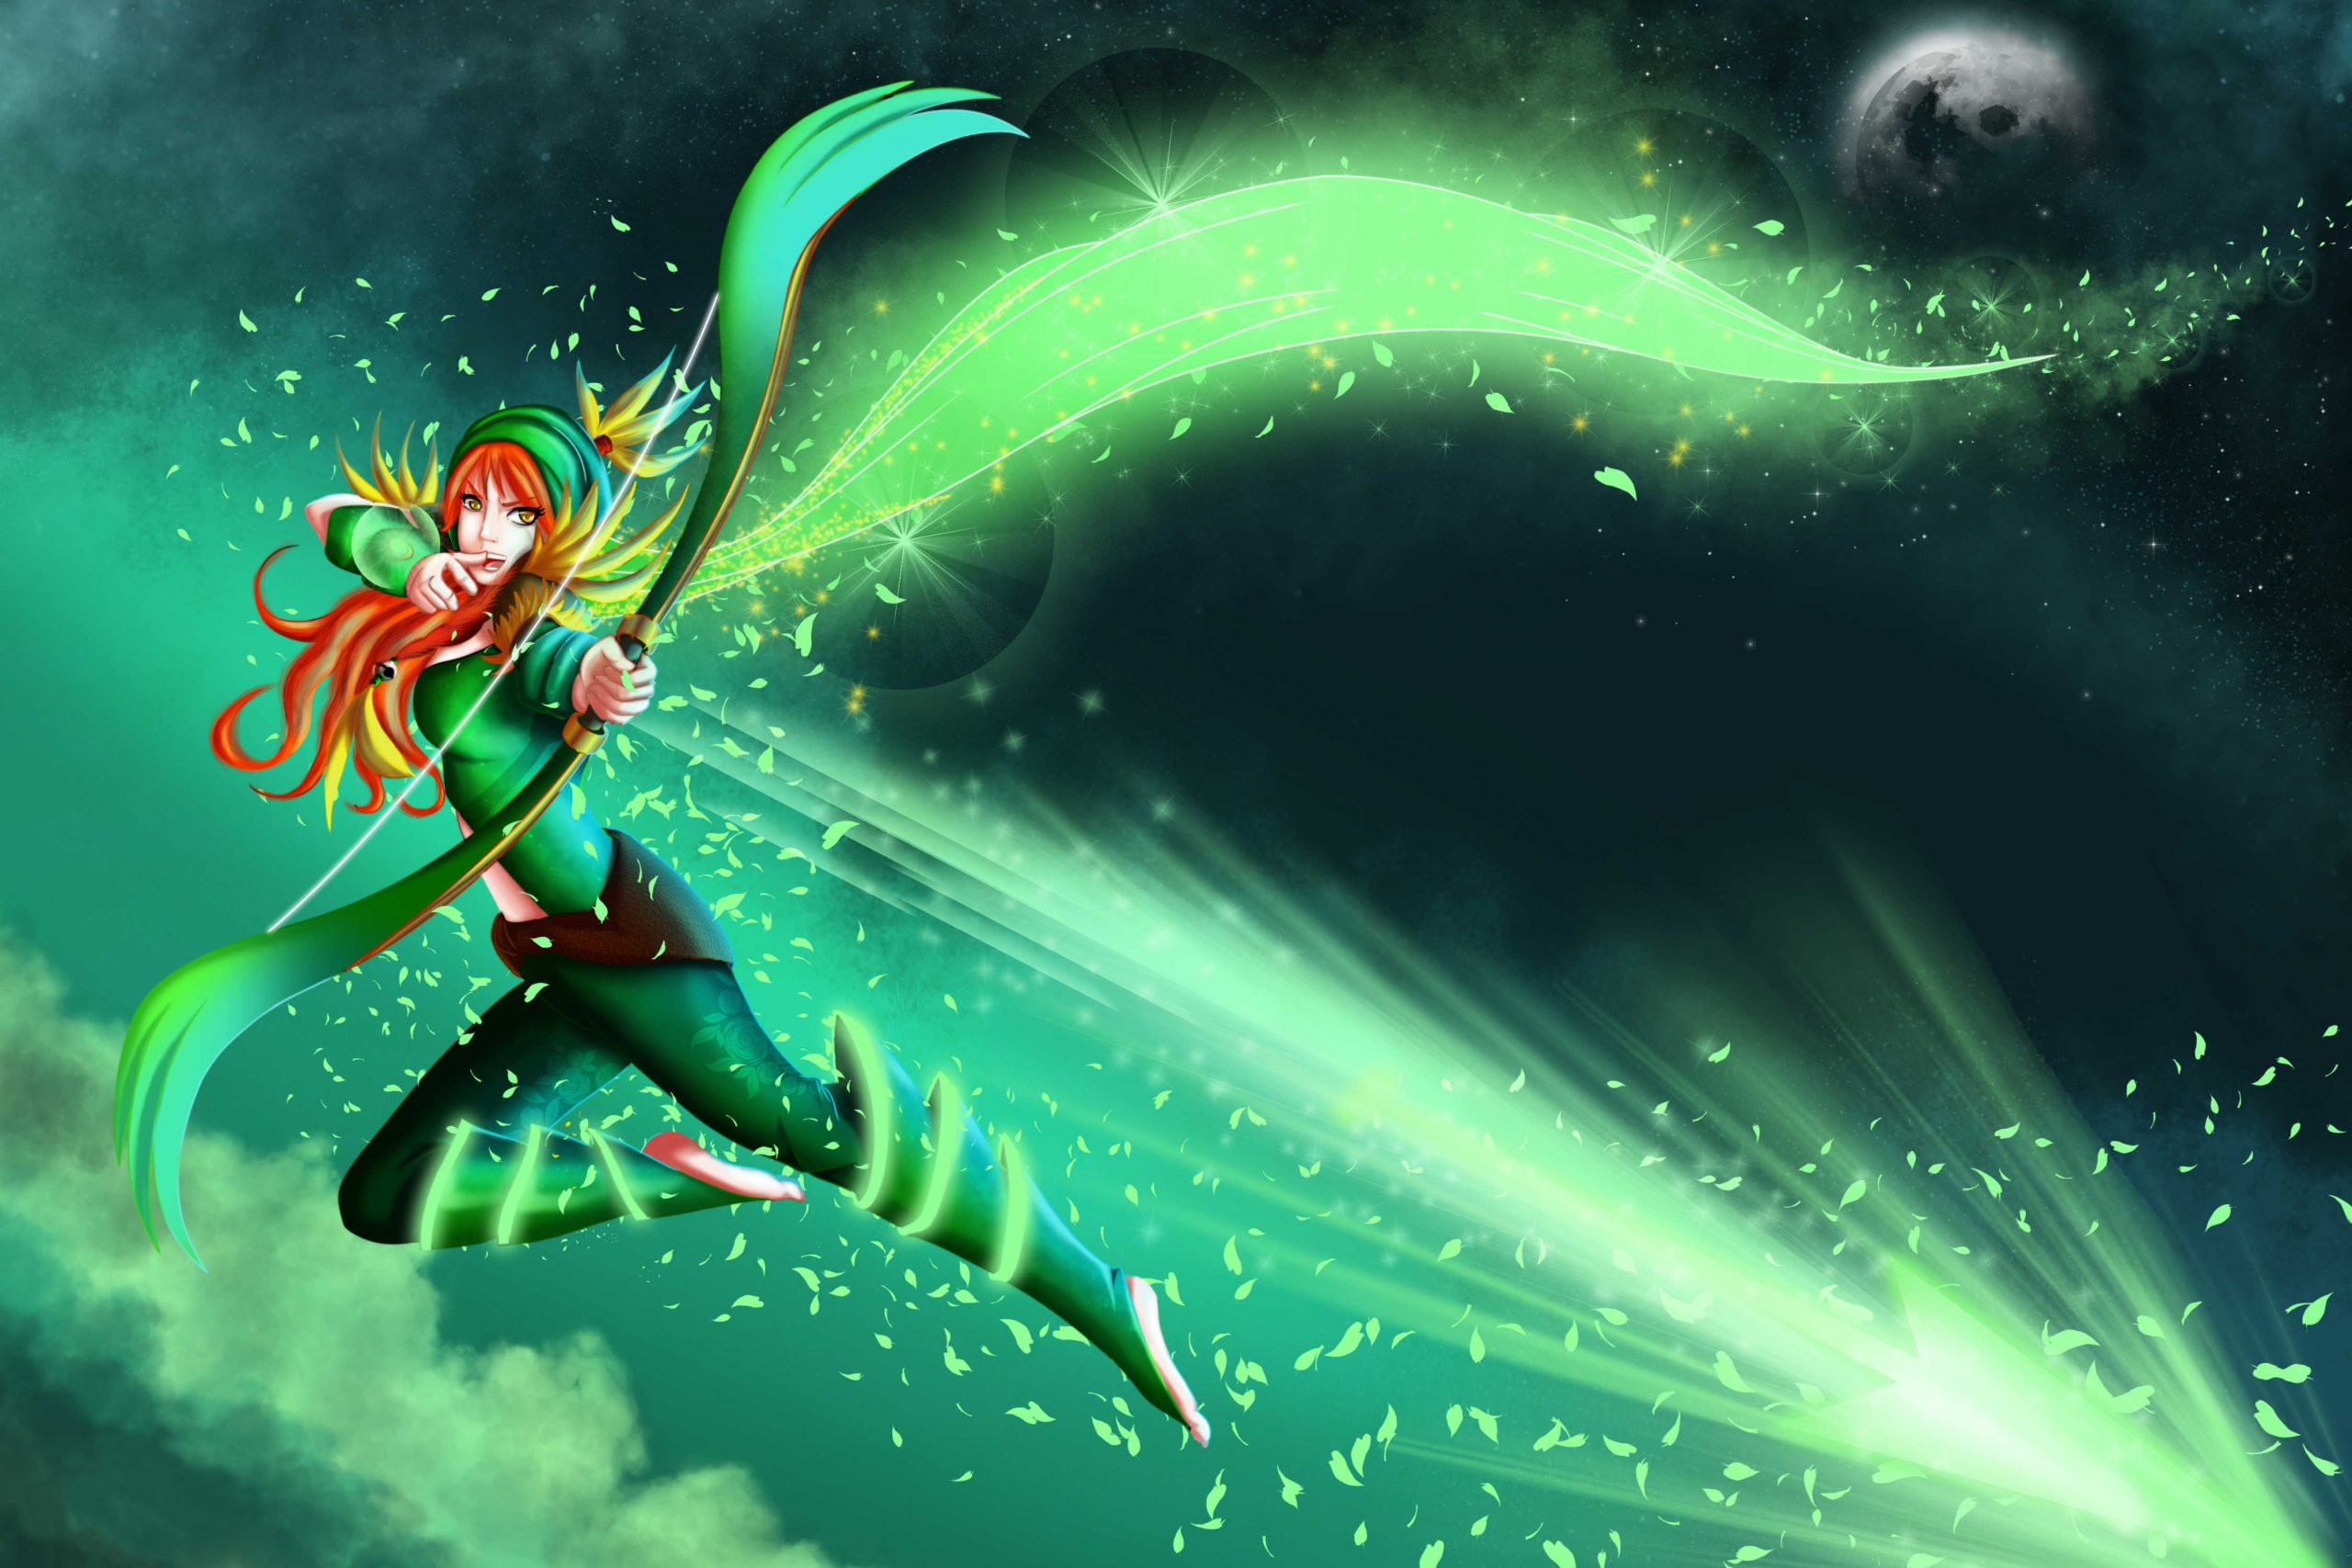 Amazing Dota 2 Wallpaper For Your Pc Dmarket Hd